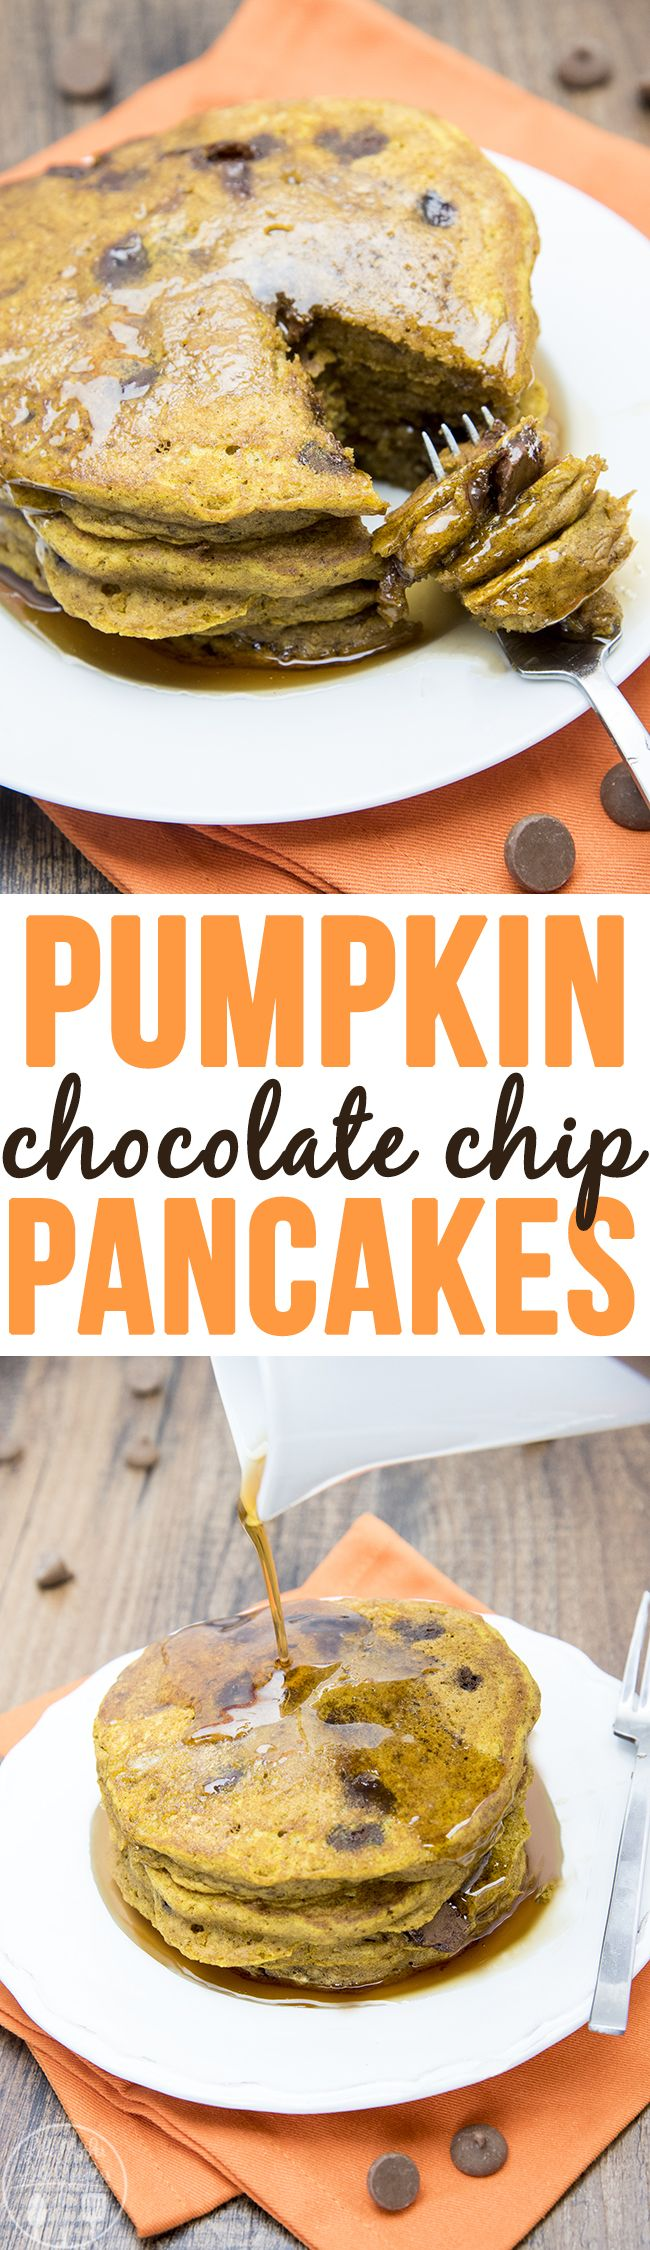 Pumpkin Chocolate Chip Pancakes - This is the perfect recipe for thick and fluffy pumpkin pancakes. The pumpkin pancakes have the perfect flavors of fall stuffed full of chocolate chips. You have to make these for breakfast this fall!